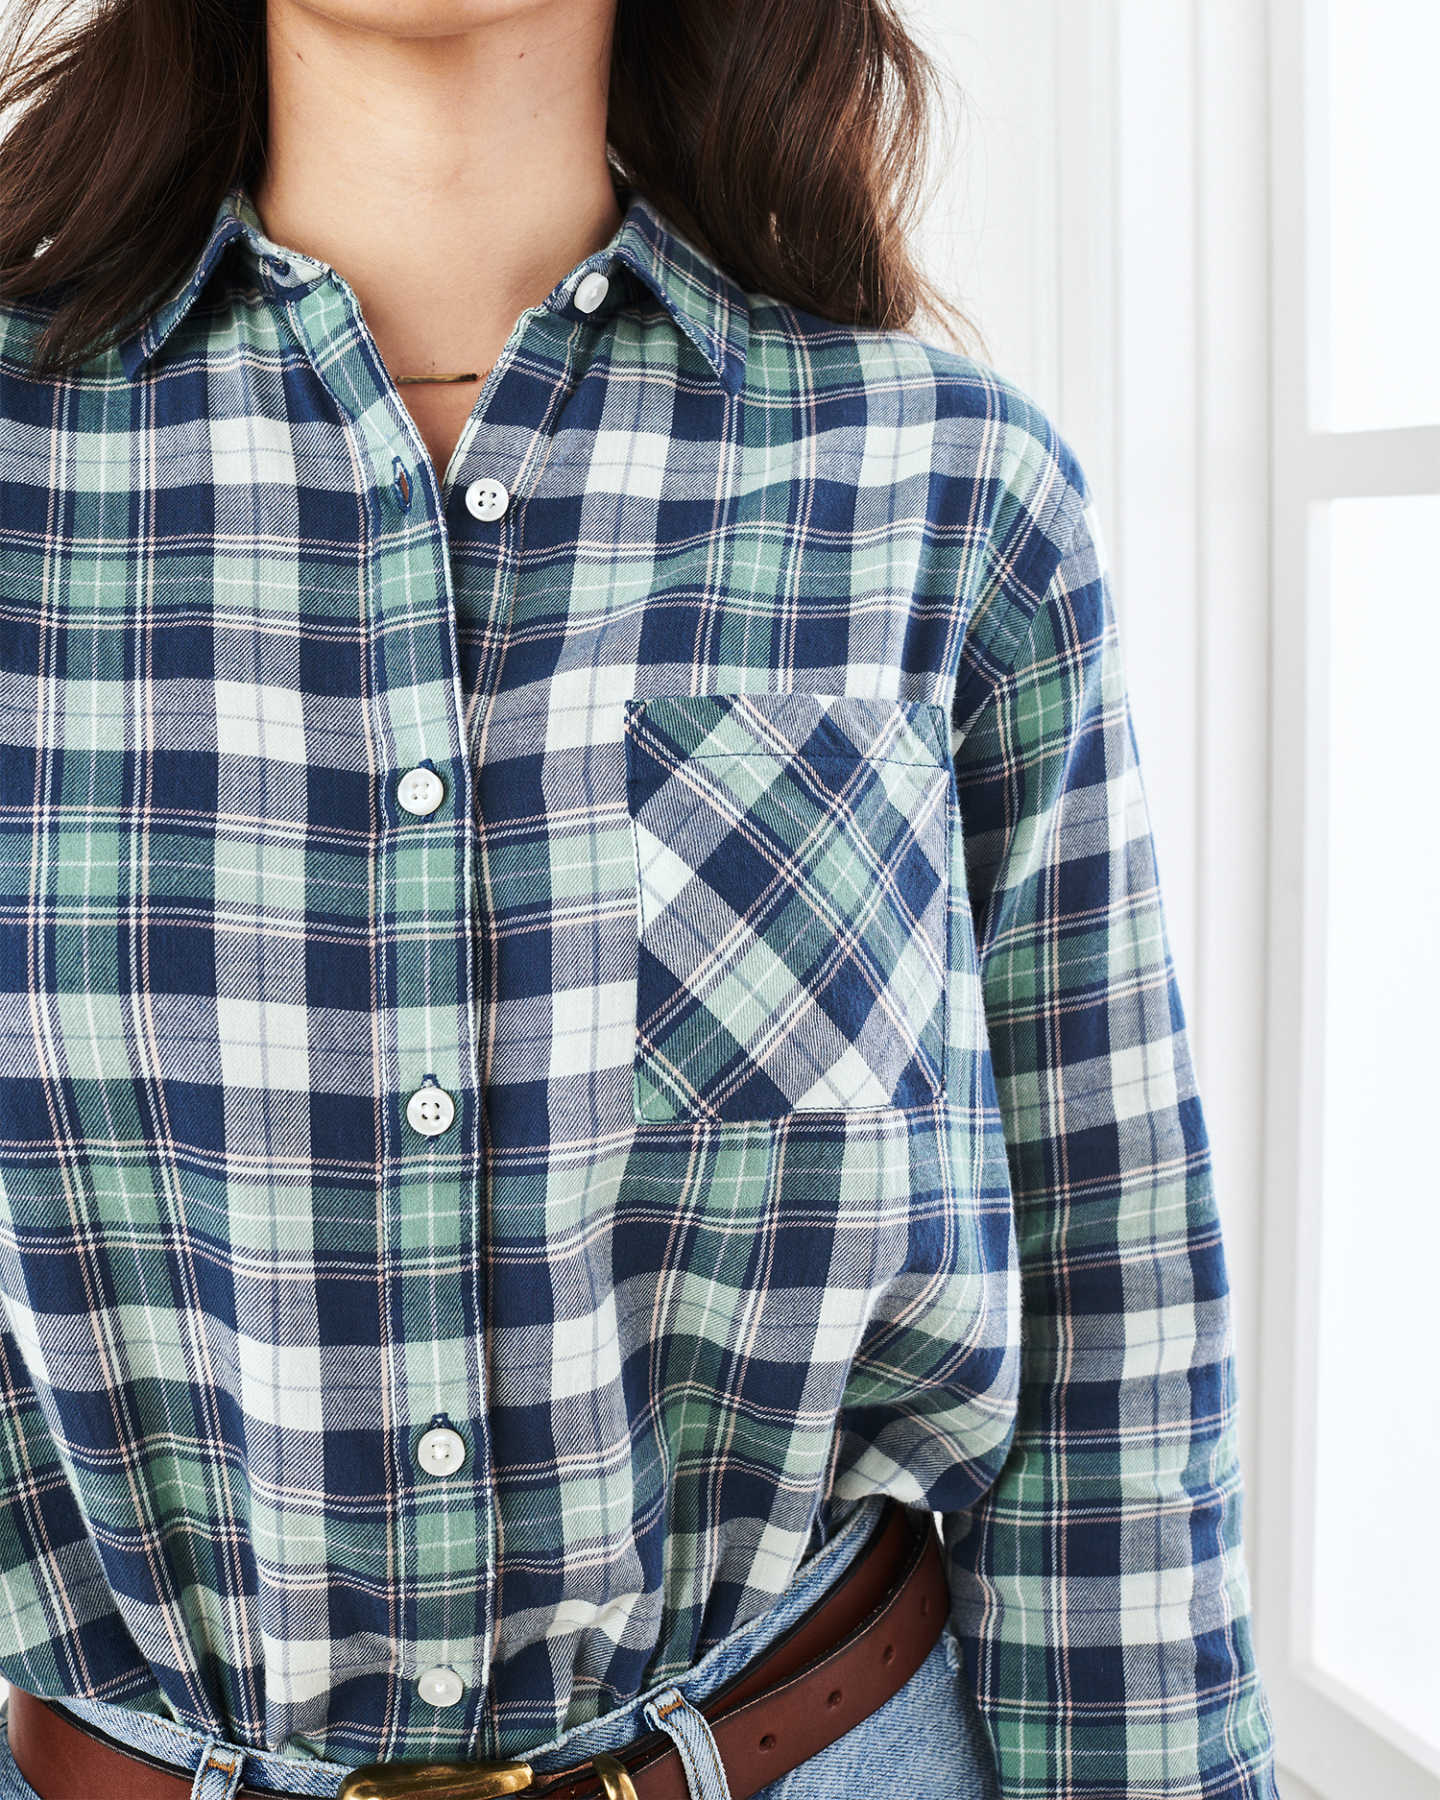 Brushed Twill Plaid Shirt - undefined - 3